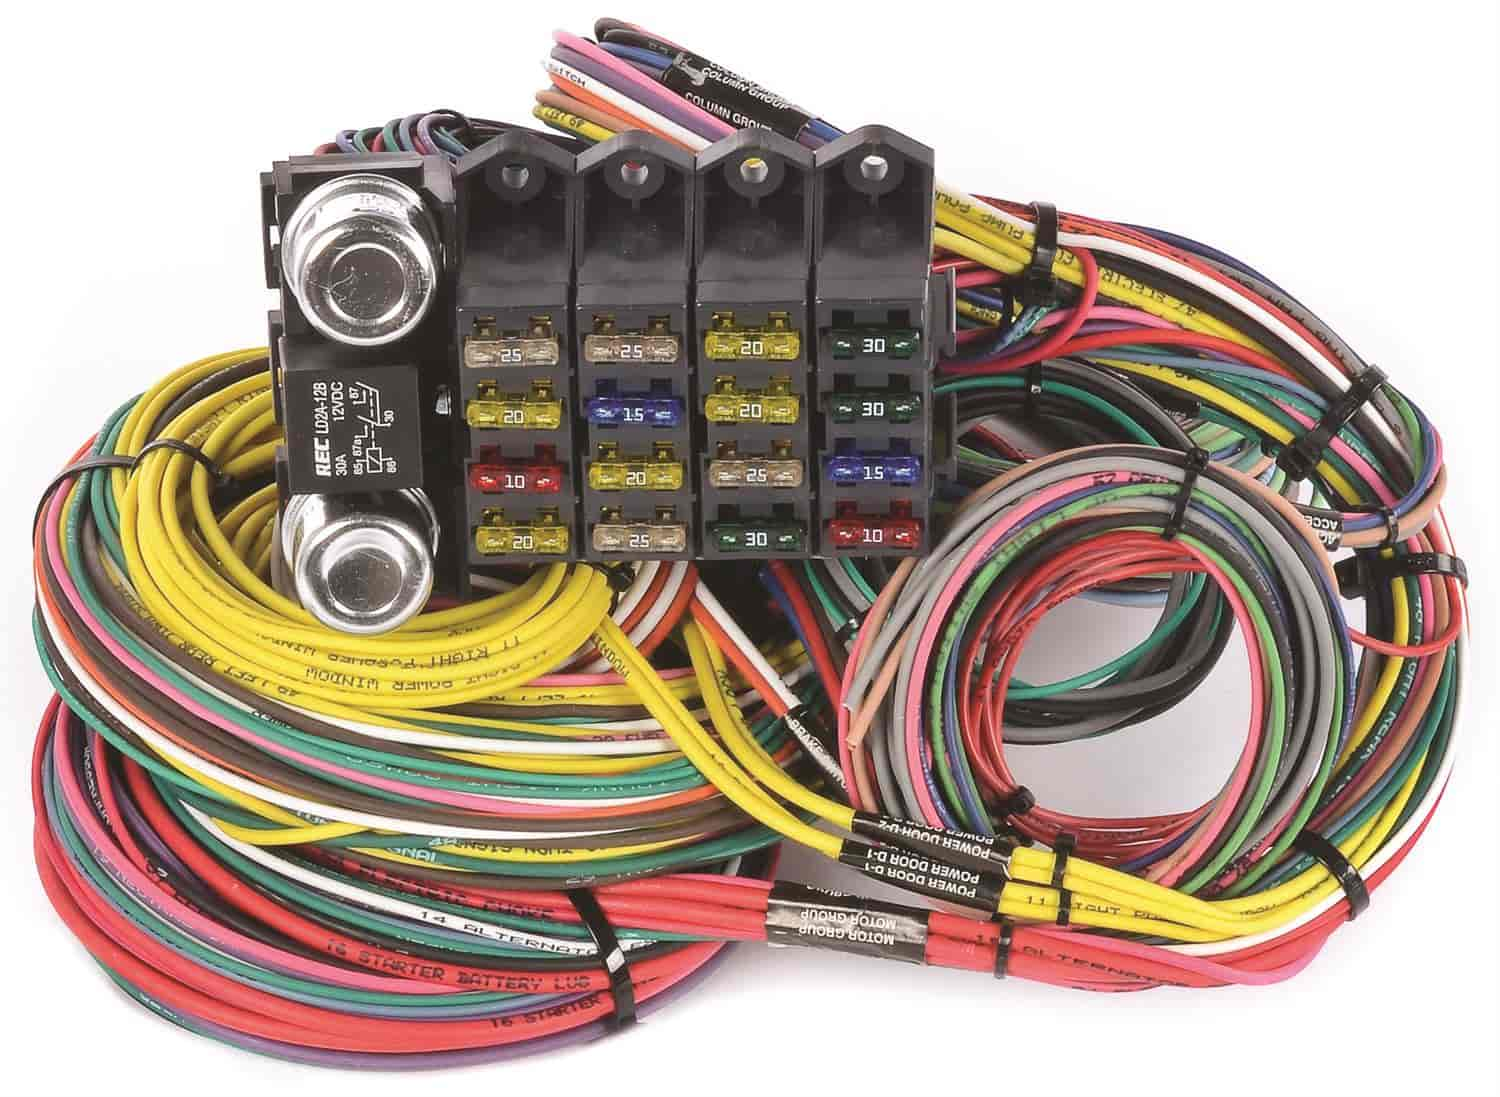 555 10405 jegs performance products 10405 universal wiring harness, 20 VW Wiring Harness Kits at eliteediting.co